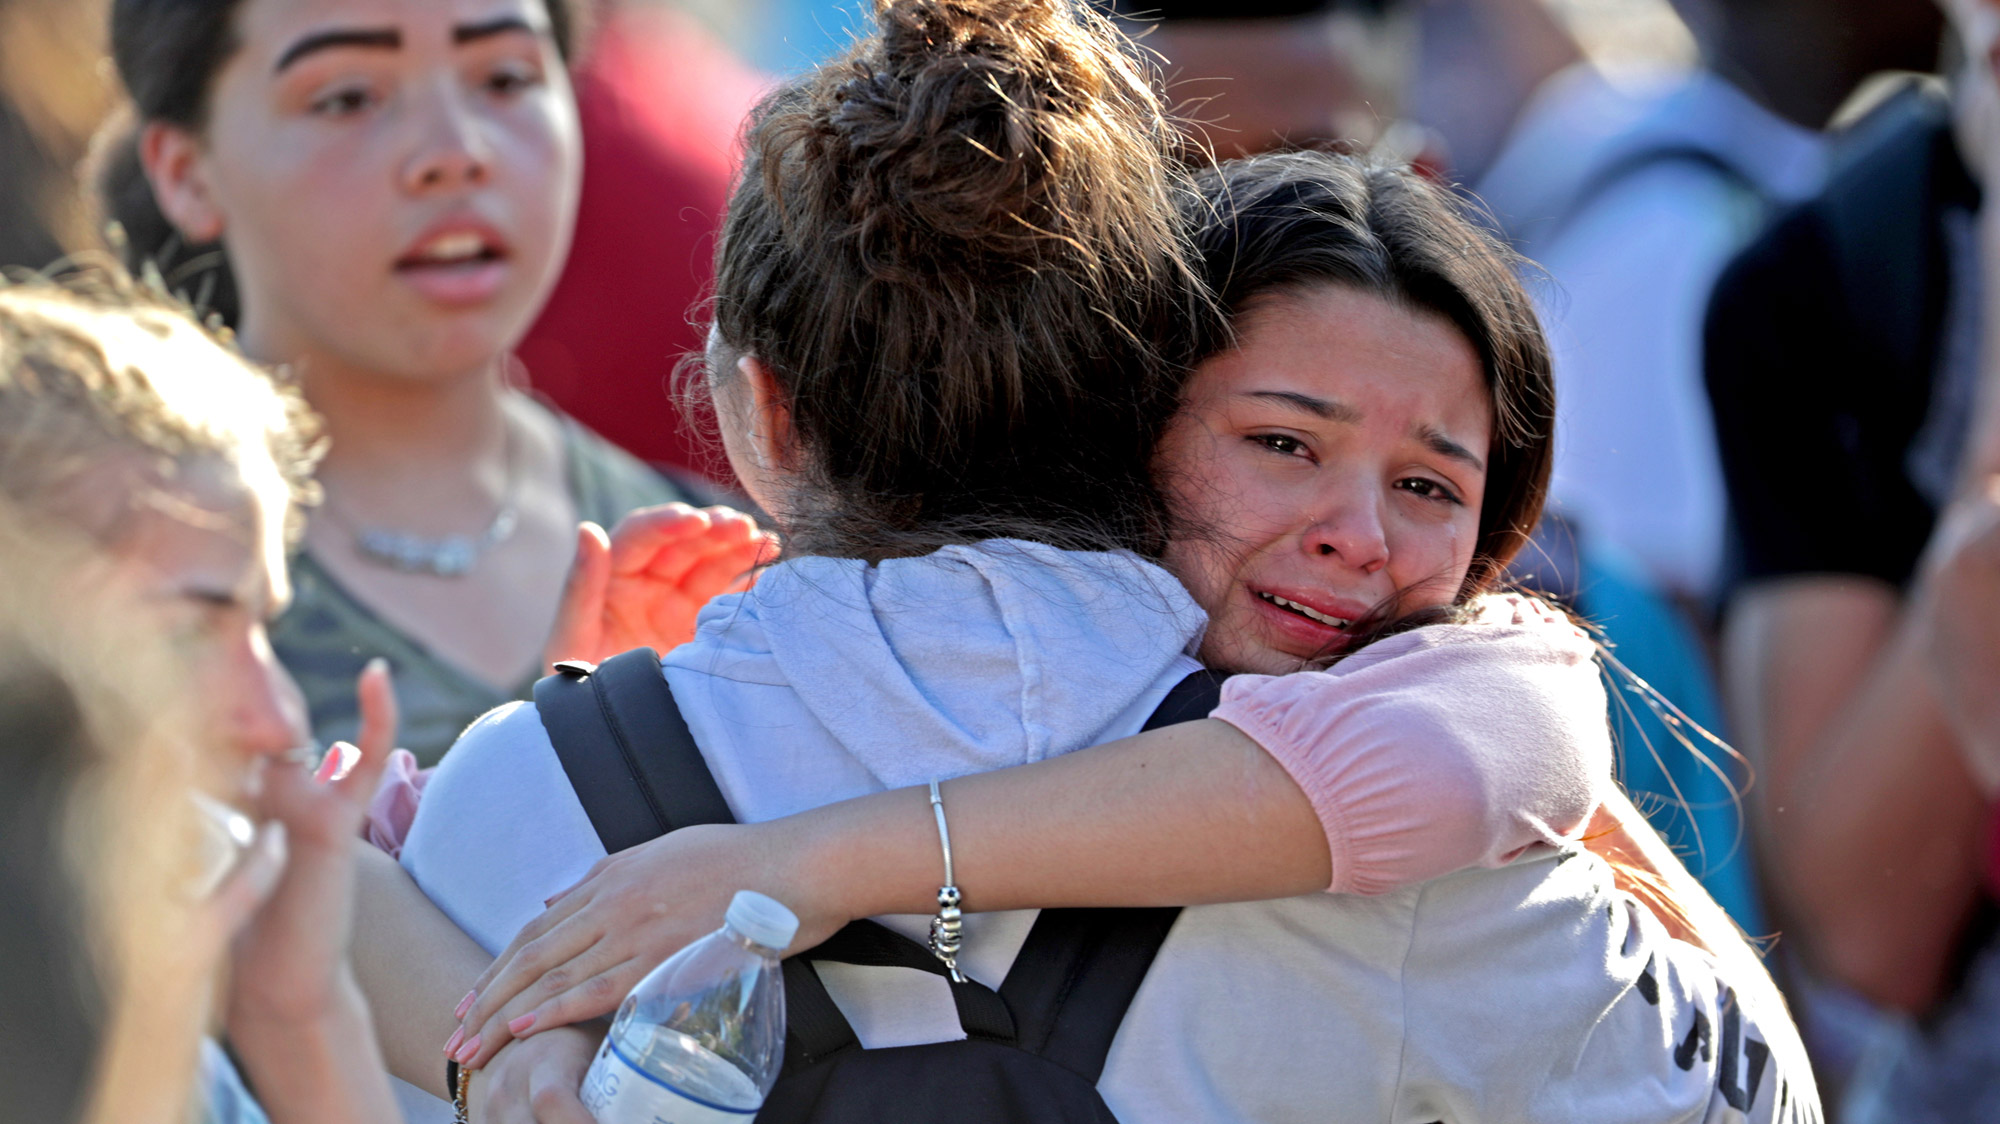 Students gather at Florida's statehouse to push for change in gun laws